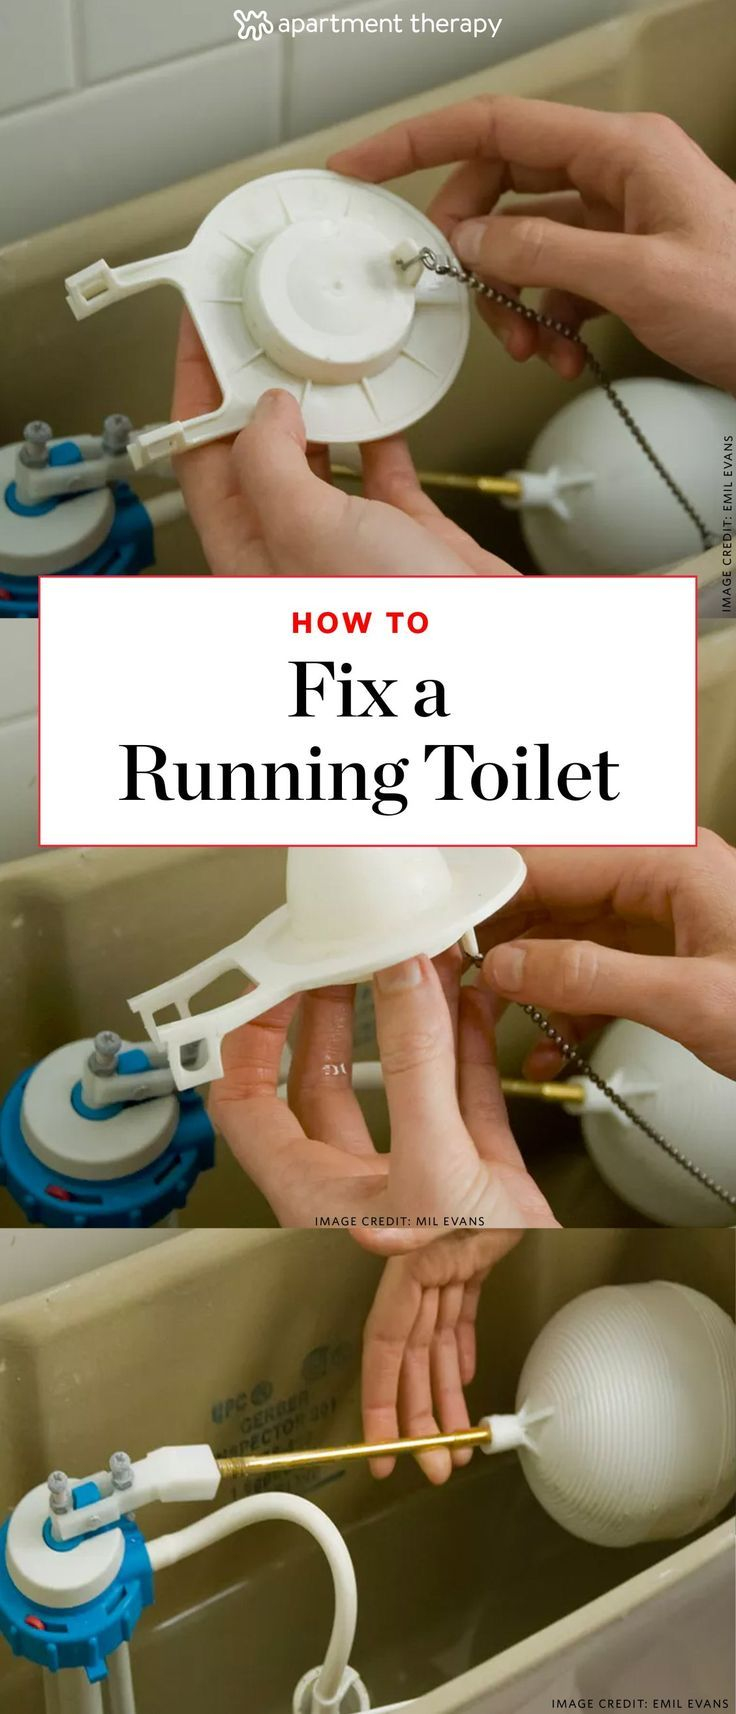 How To Fix a Running Toilet: Common Causes & Easy